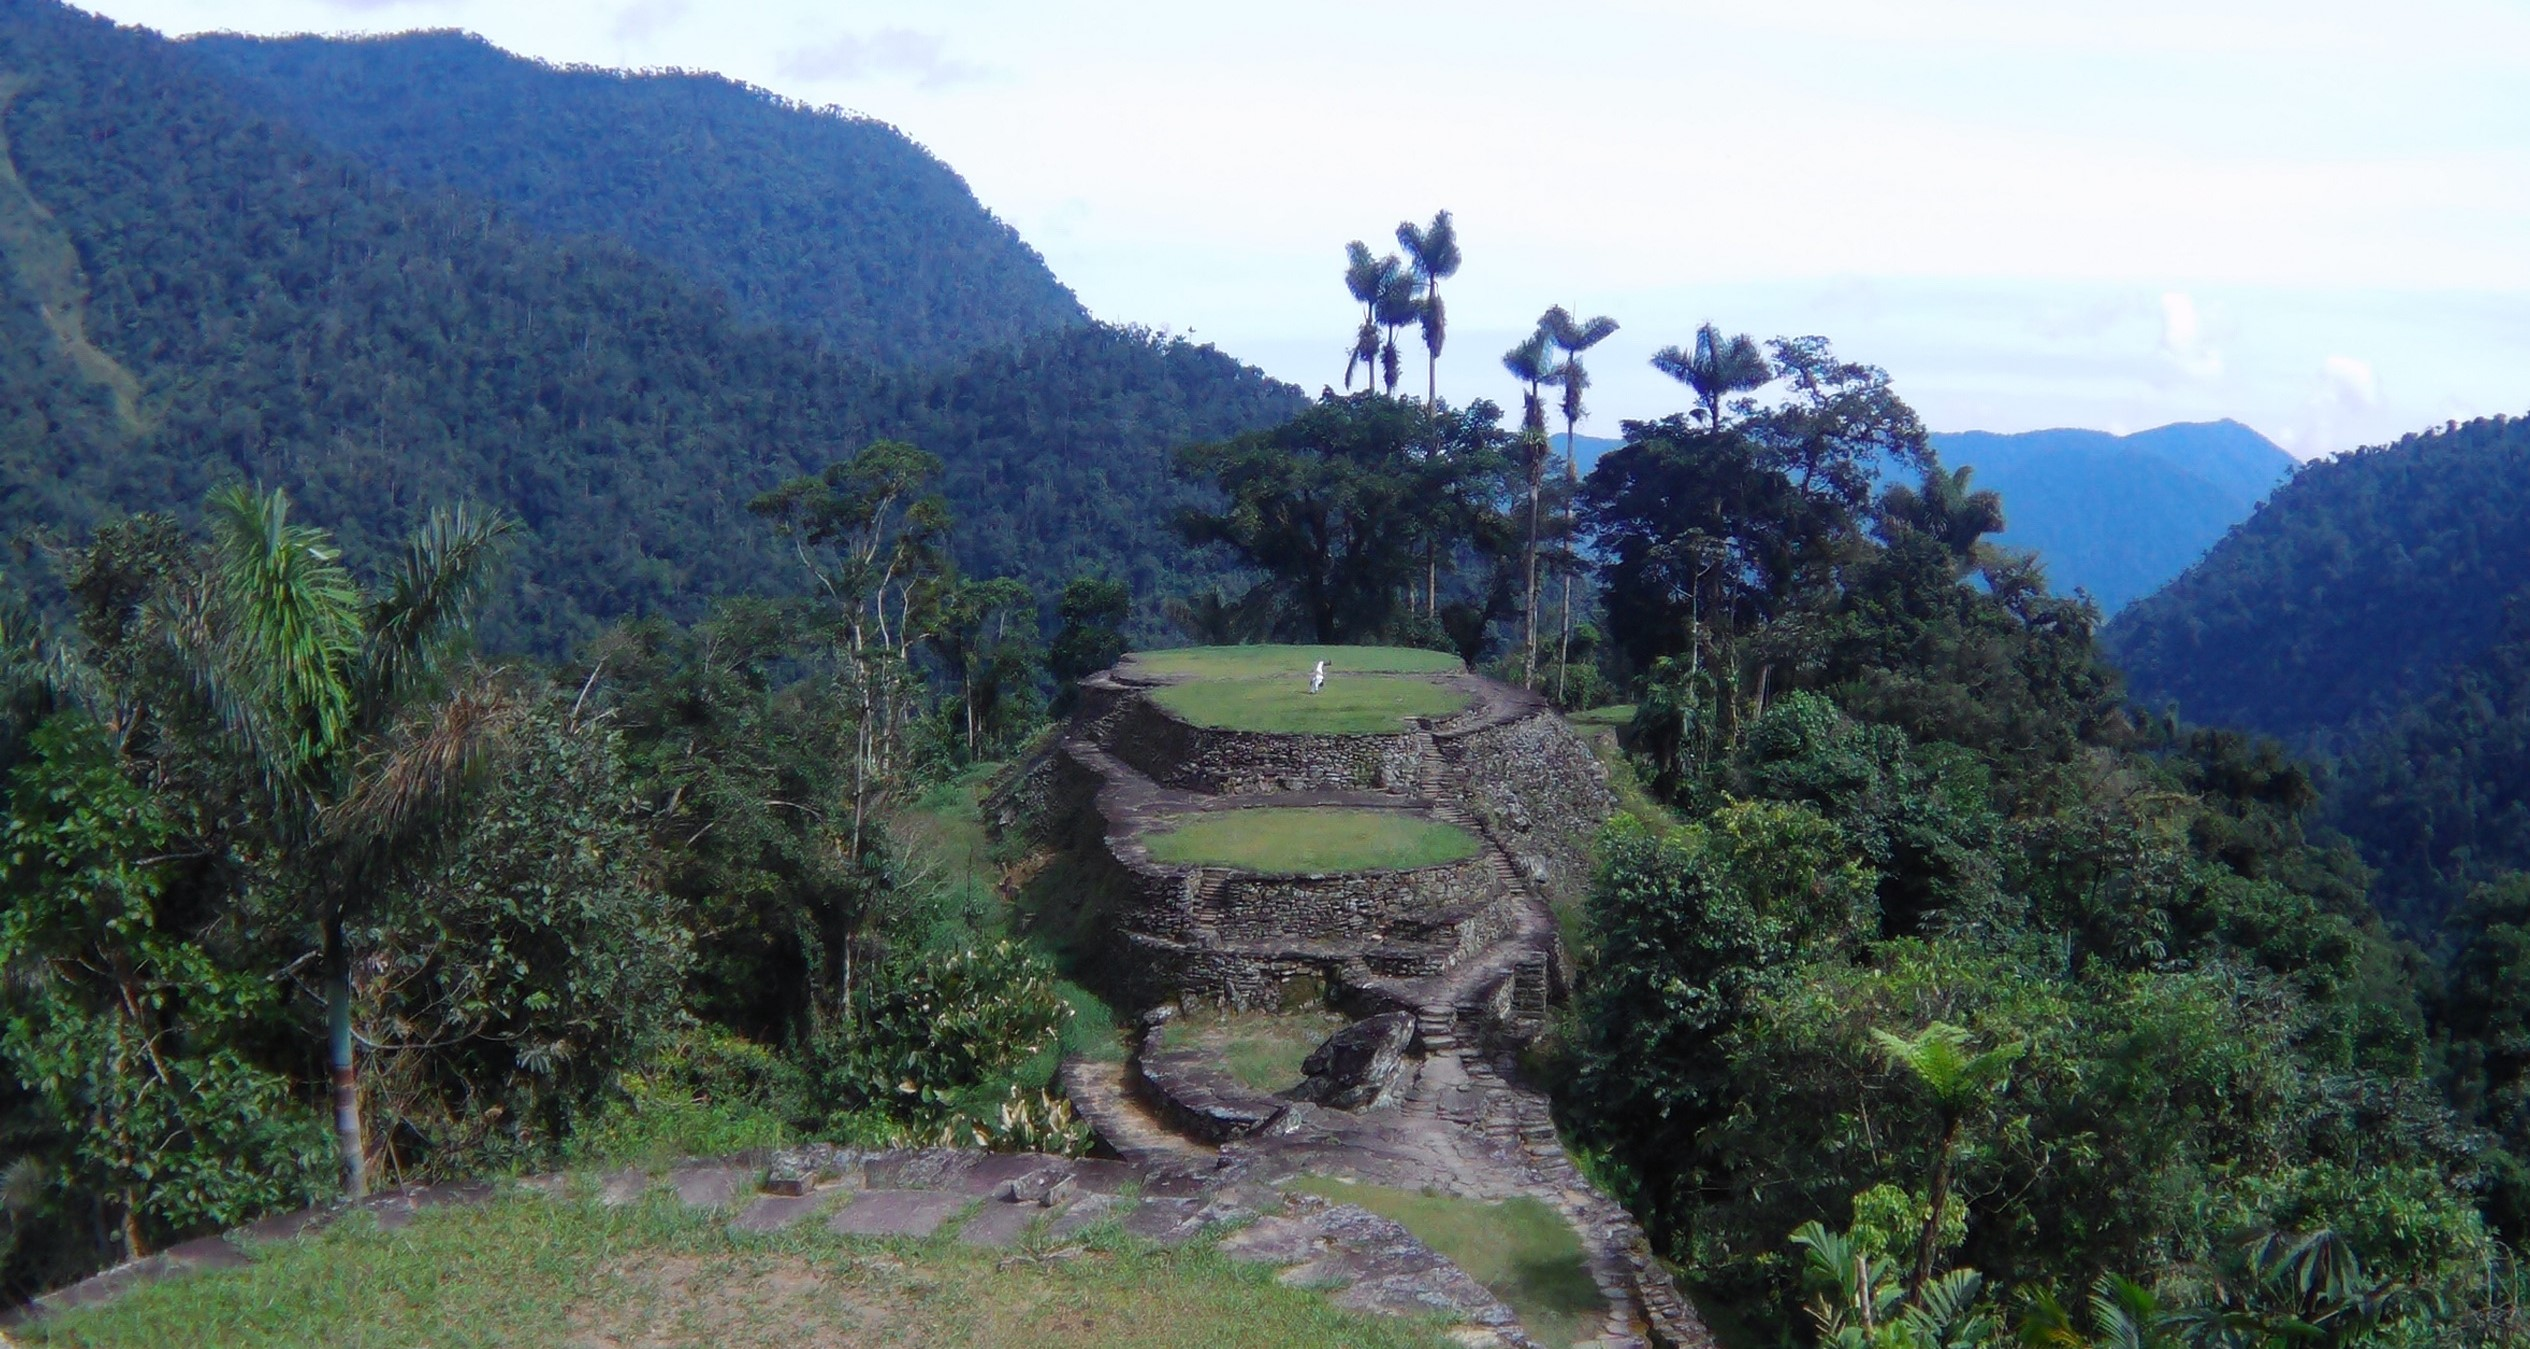 https://www.kontour-travel.com/wp-content/uploads/Ciudad_Perdida_4.jpg